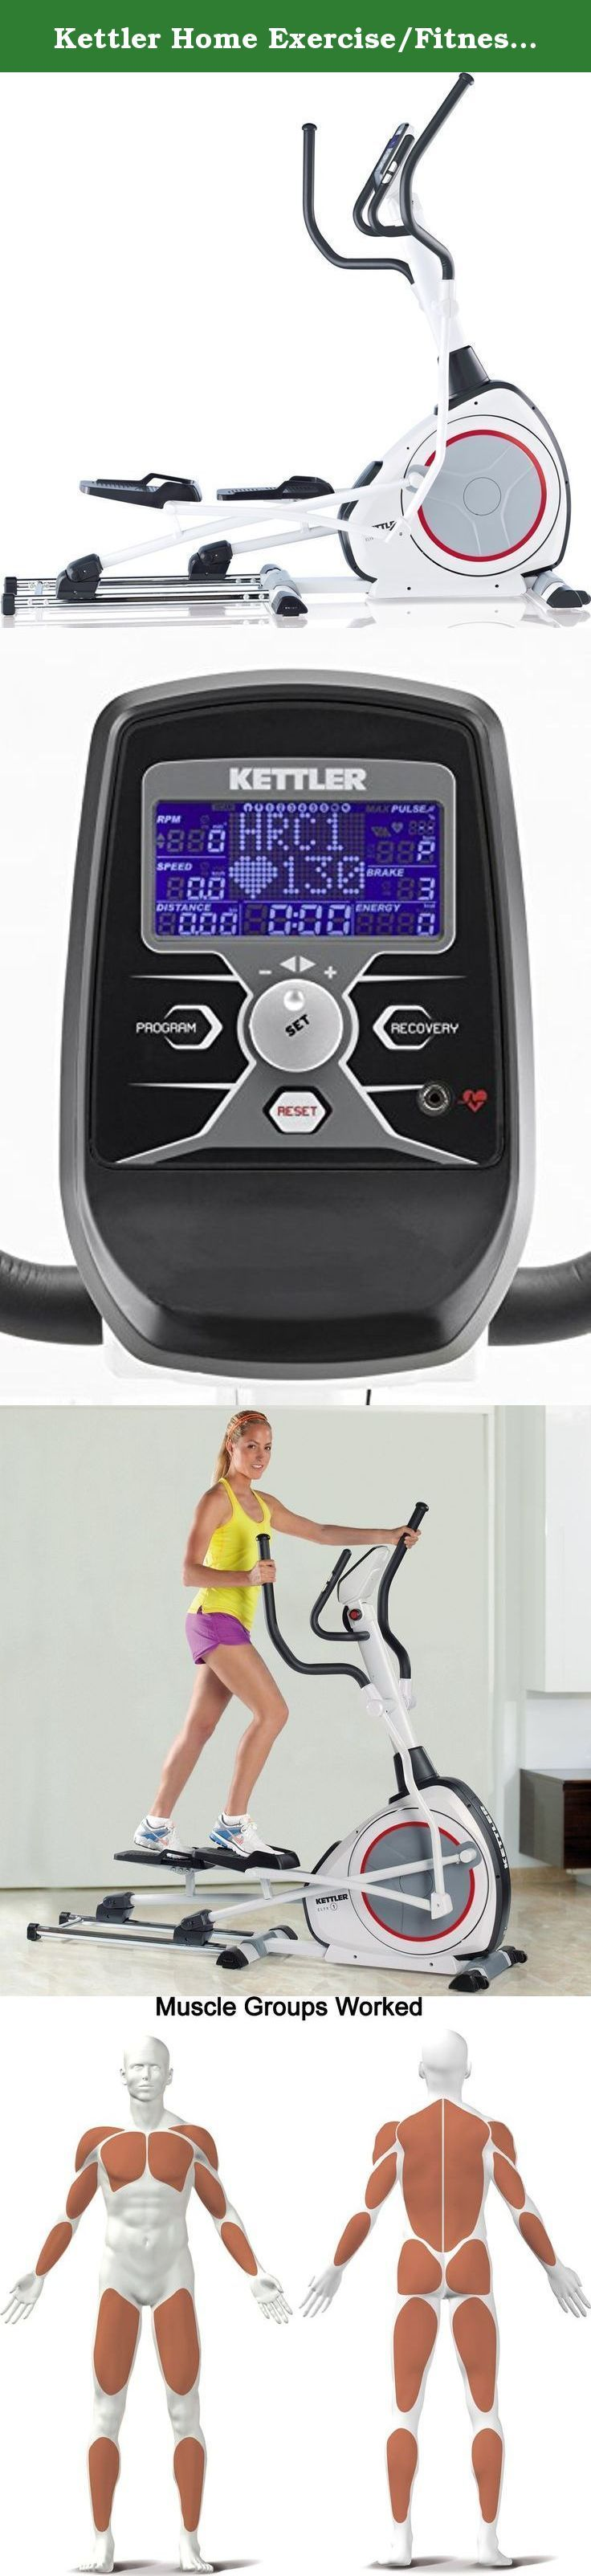 Kettler Home Exercise/Fitness Equipment: ELYX 1 Elliptical Trainer. The KETTLER Ely 1 Elliptical Trainer provides exceptionally smooth performance while delivering a great workout. Its frictionless, motorized magnetic brake system provides a range of resistance options, while a 40-pound flywheel ensures extremely smooth performance. Choose from 8 programs with adjustable intensity levels. The blue, back-lit LCD computer display with push and turn controls shows Total distance, Time, Speed...